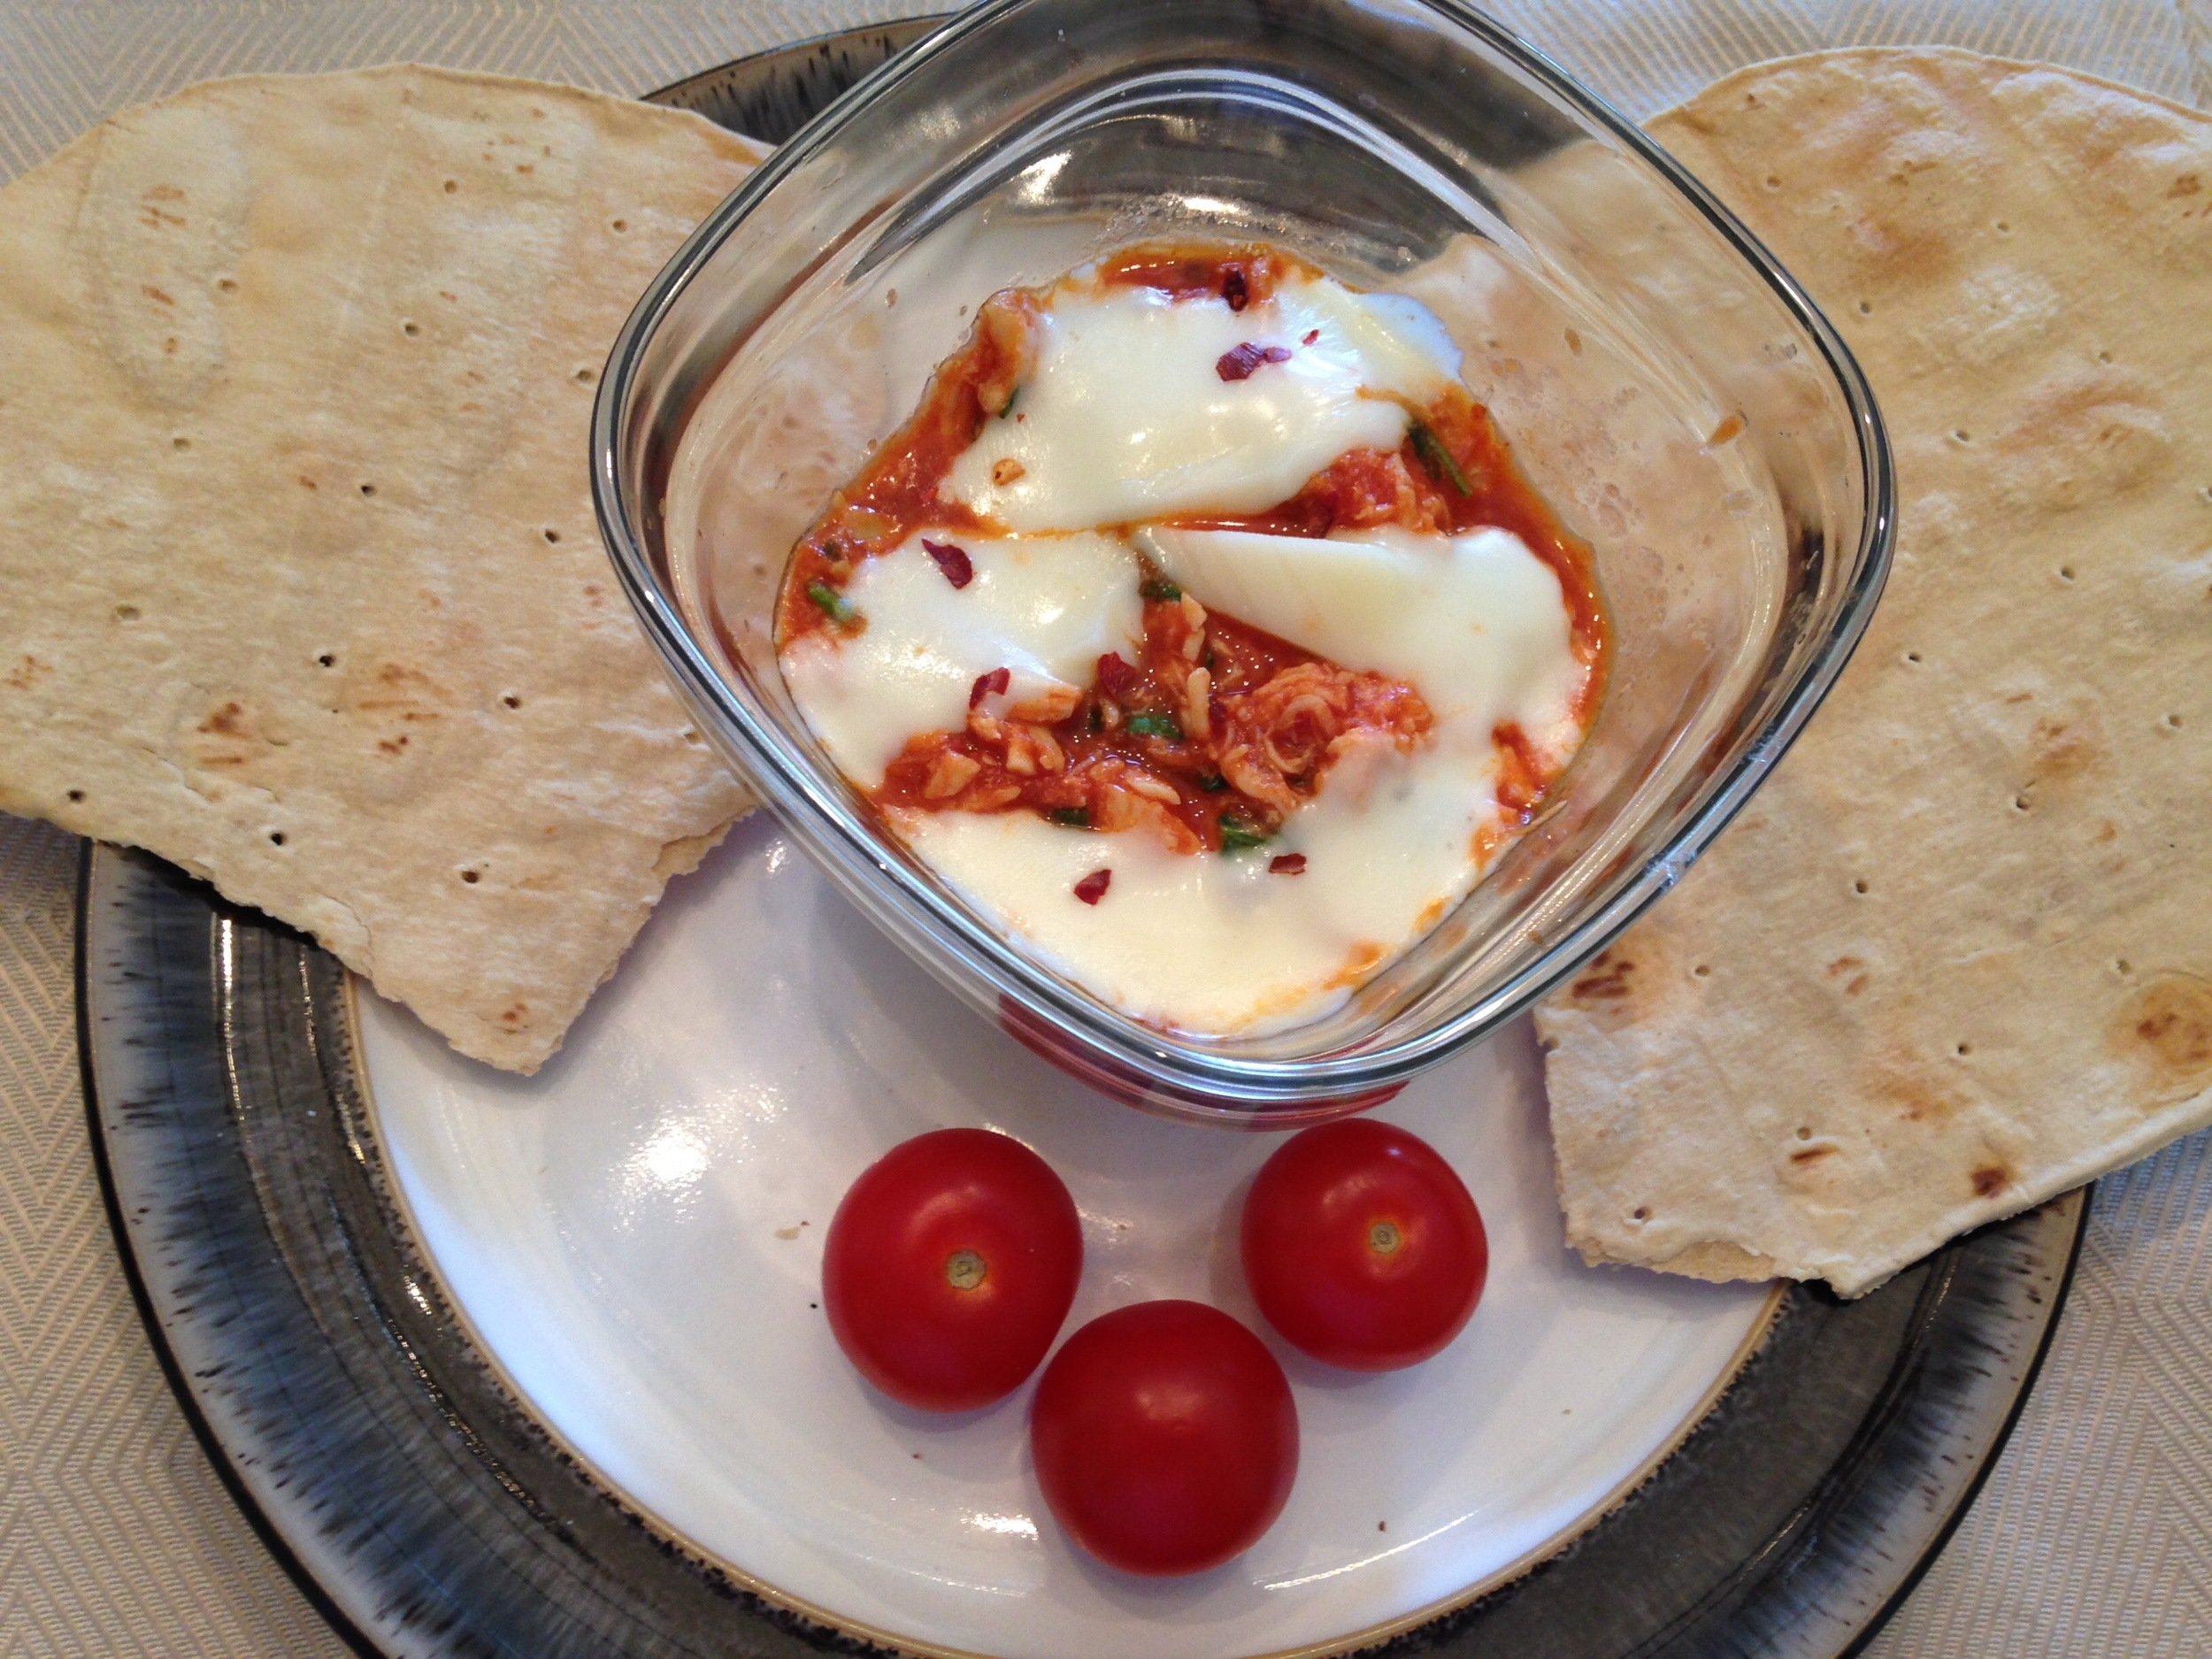 Lightened-up Chicken & Mozzarella Dip with baked Gluten Free Flatout Bread Wrap and tomatoes!